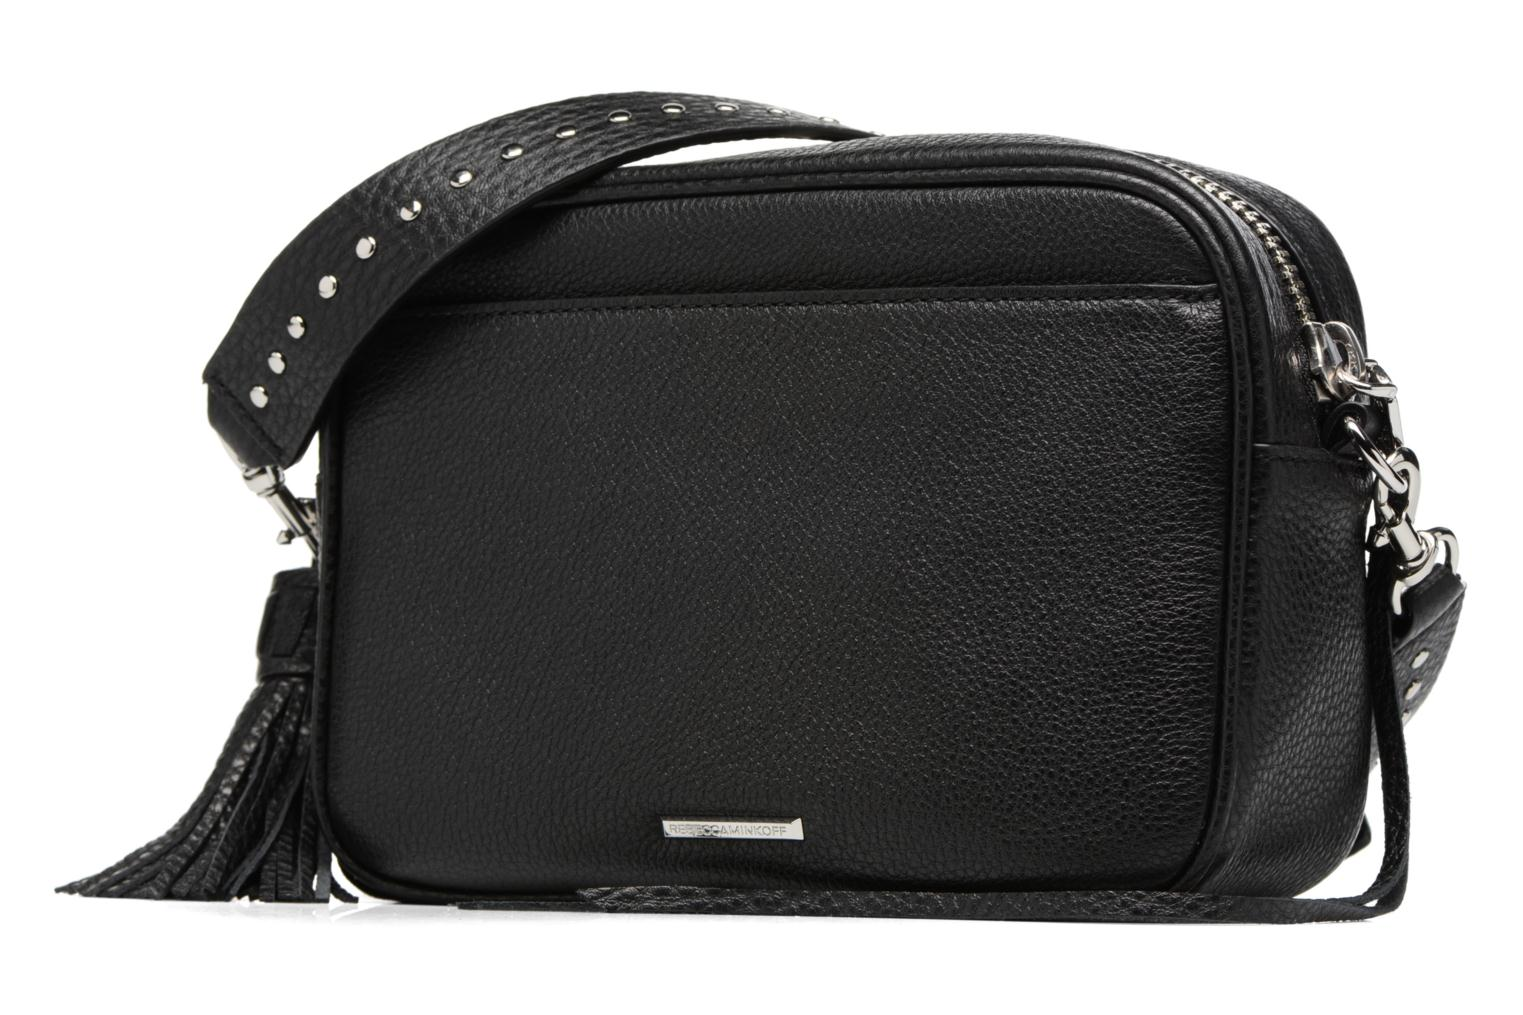 Rebecca Bryn Bag black Minkoff Camera 001 rS0q5r1w